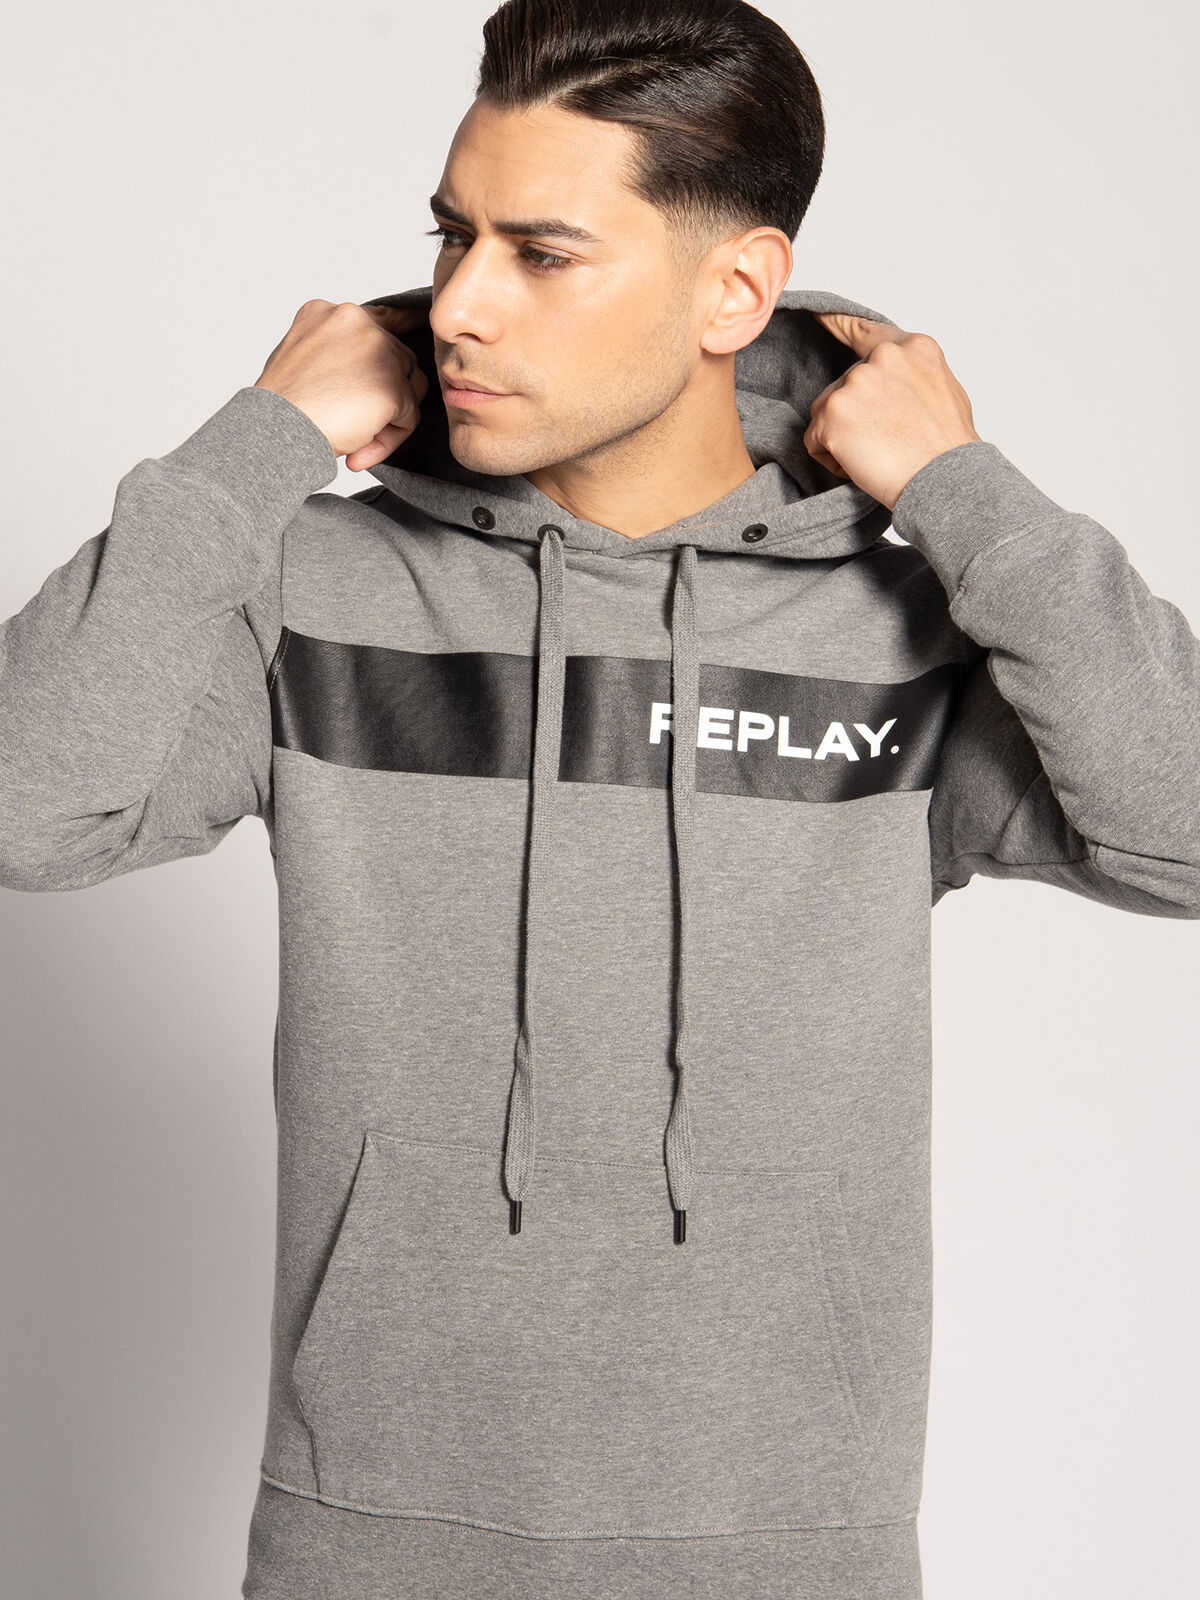 Replay Sweatshirt Stripe Block schwarz | Dress for less